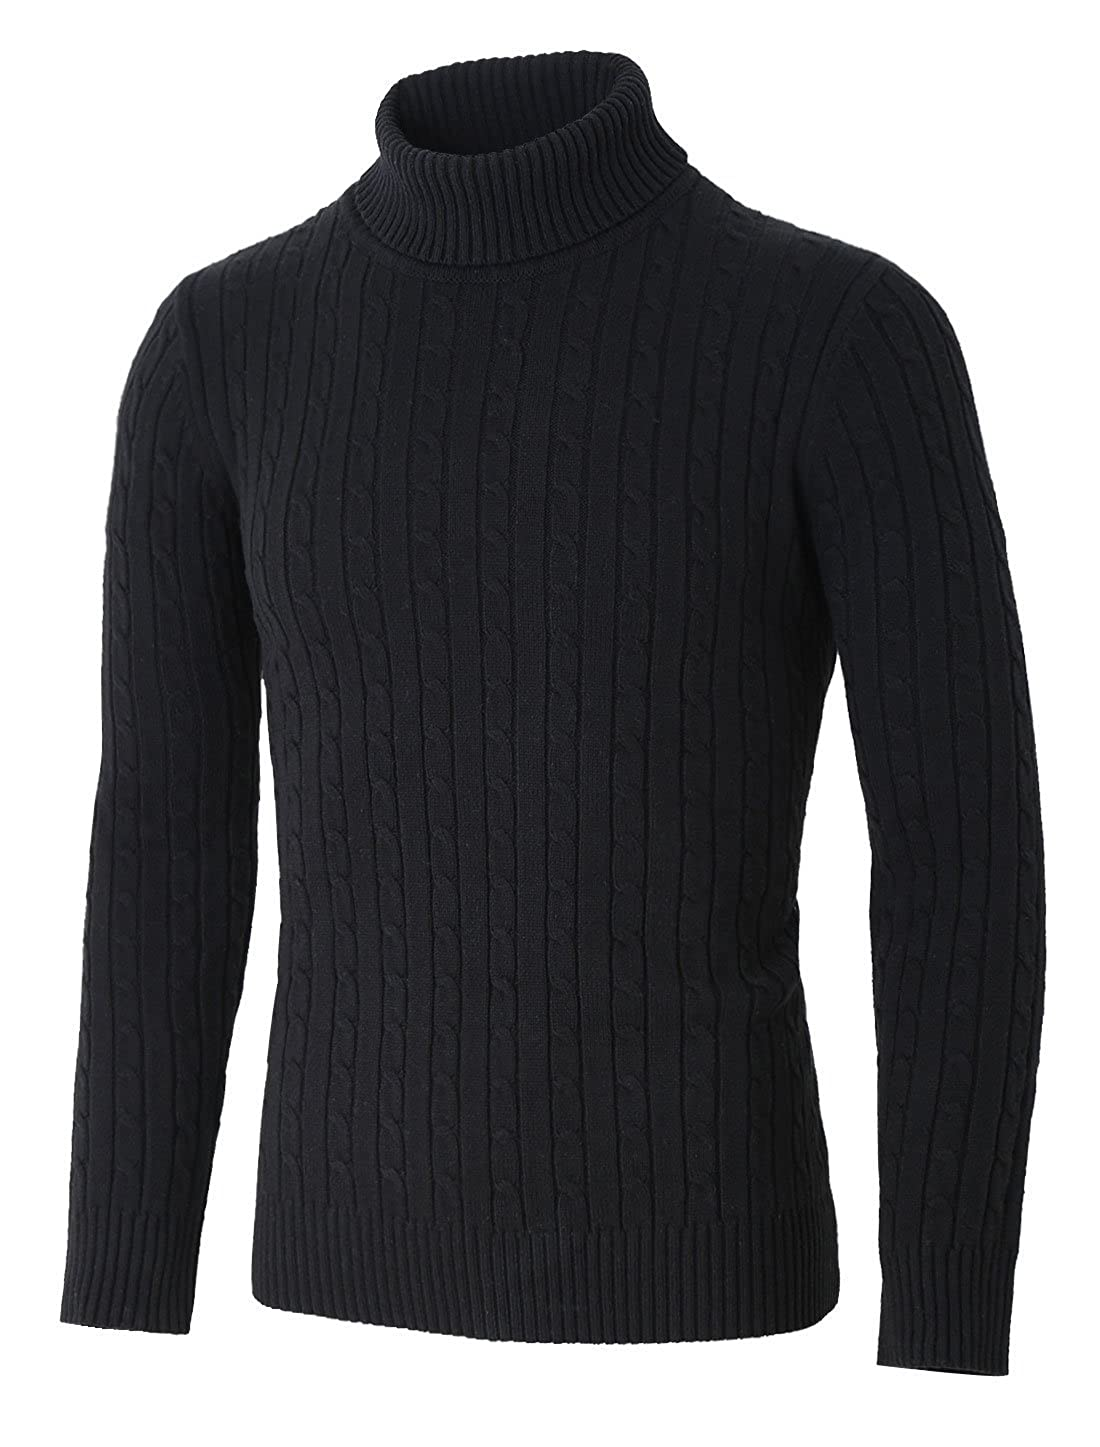 uxcell Men Turtleneck Long Sleeves Pullover Cable Knitted Sweater g16120700ux0014